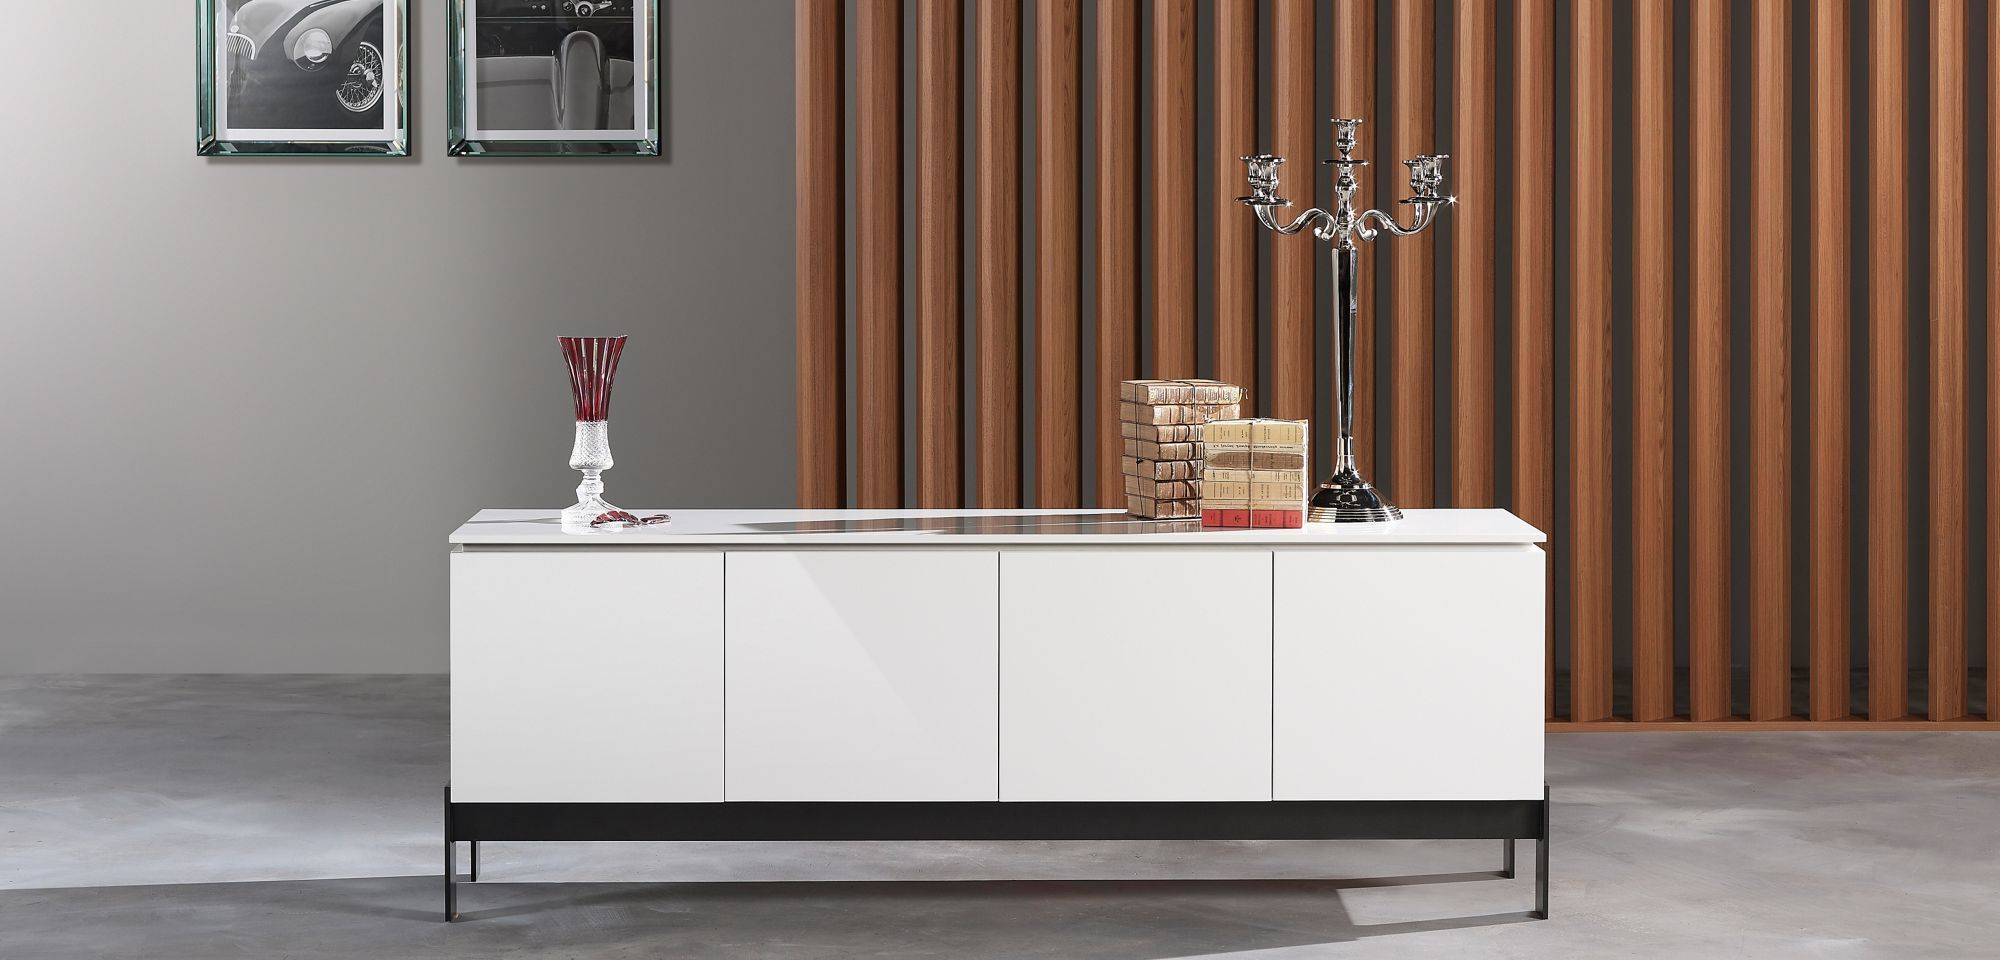 Coda Sideboard | Dining Table/chairs/console | Dining Room In Womack Sideboards (View 13 of 20)